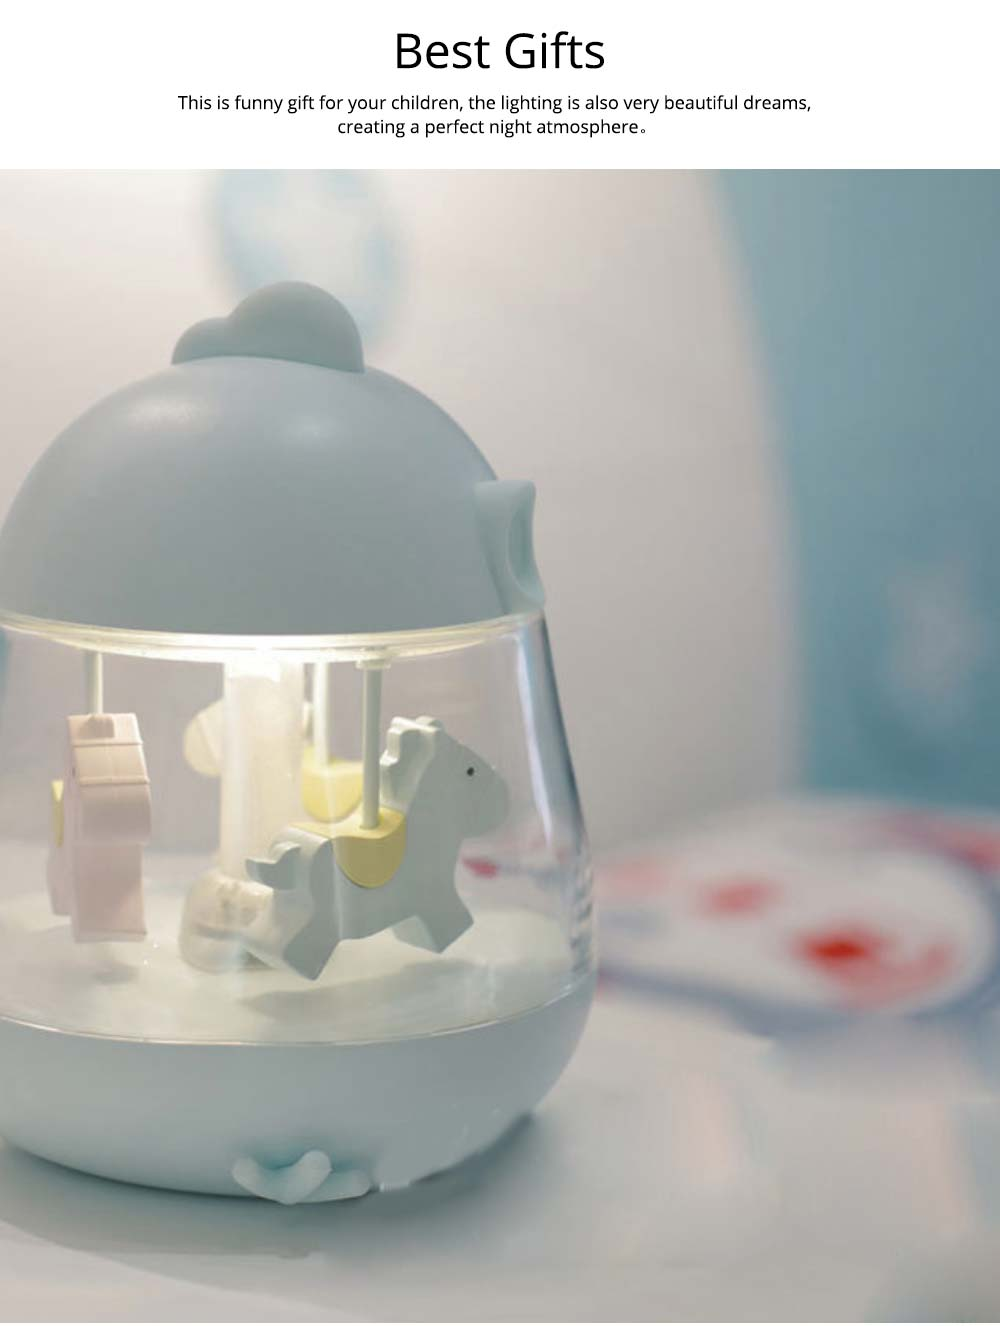 Children Tangible Lamp Bedside Light, USB Carousel Music Light with Fantasy Chicken Design 5